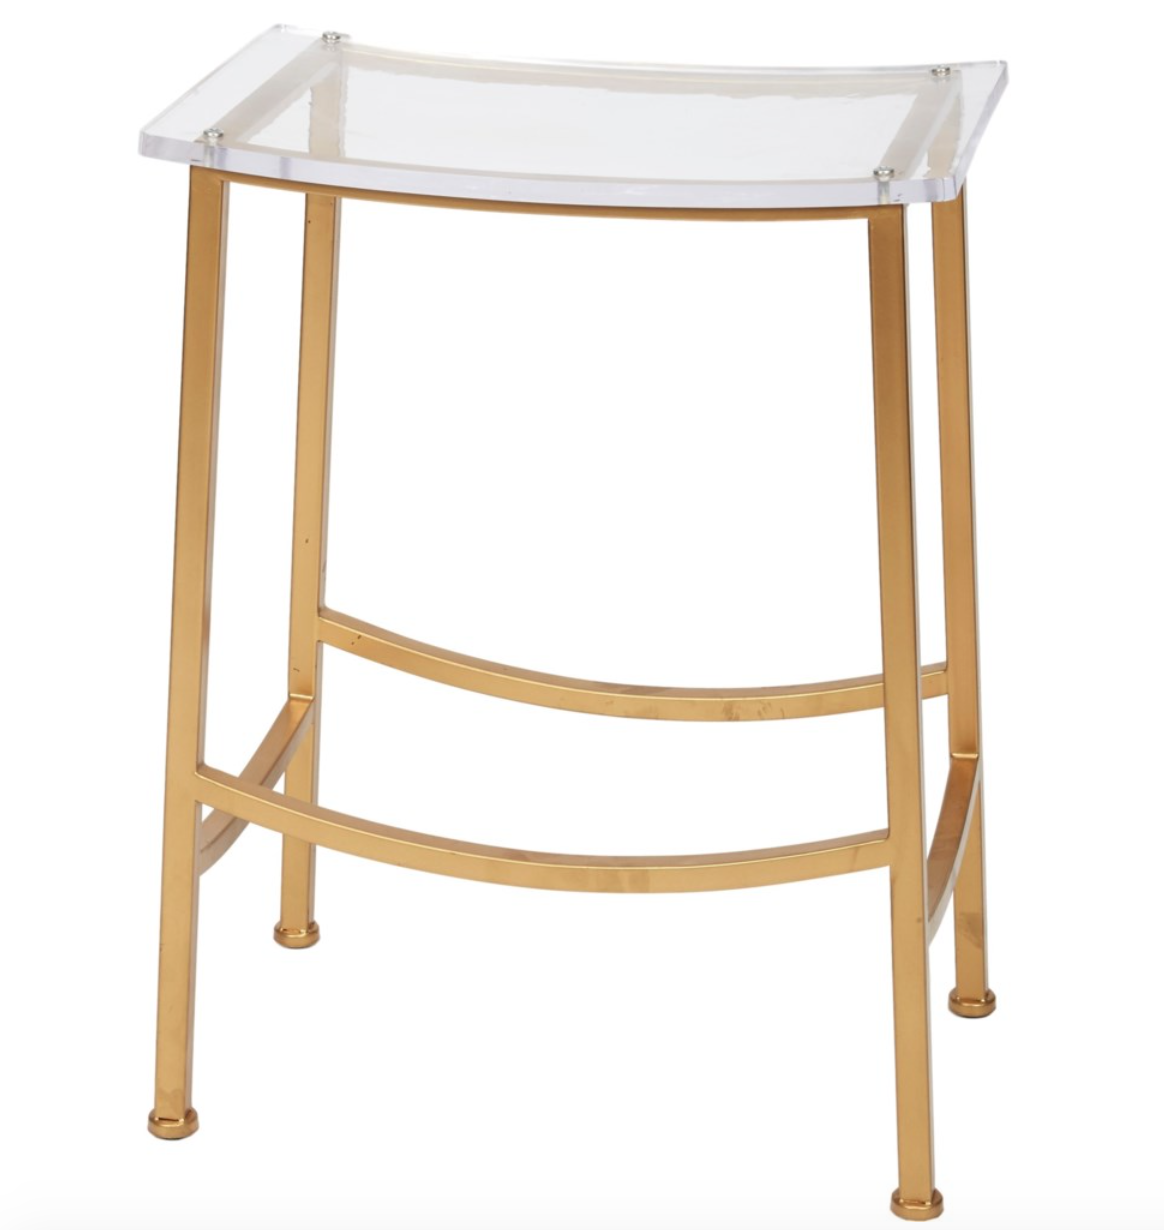 Chapman Gold & Acrylic Counter Height Stools